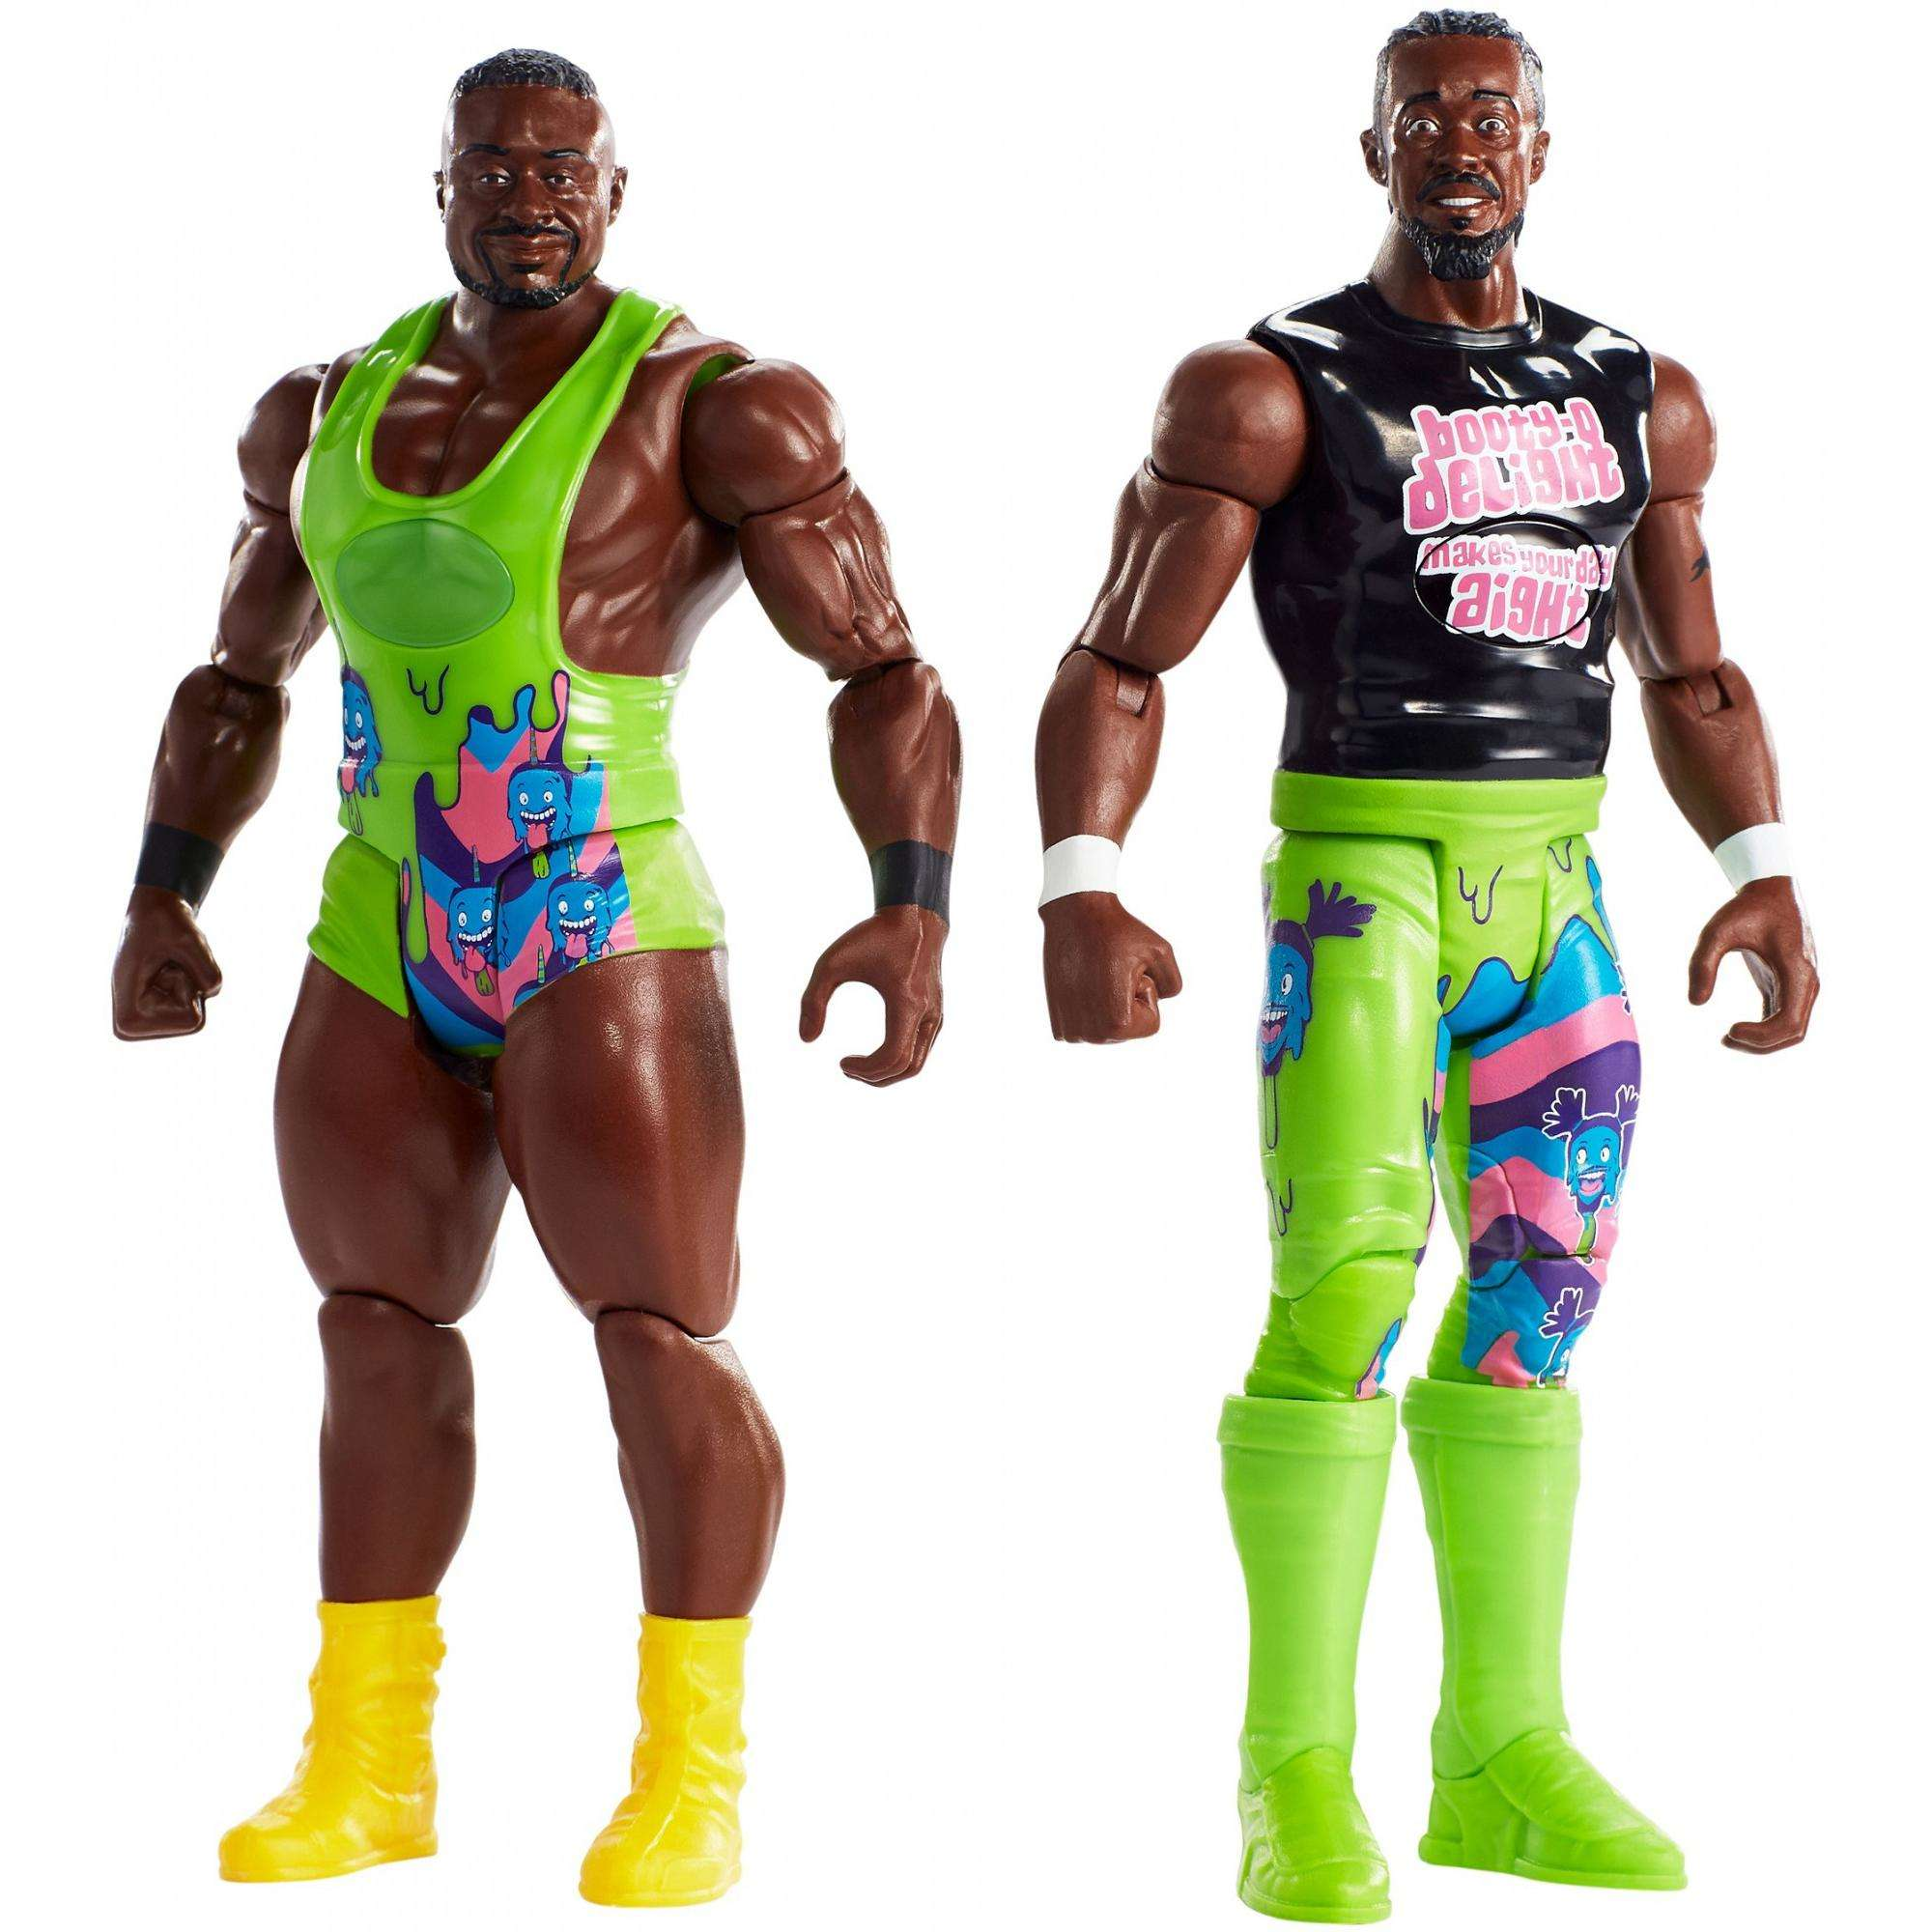 WWE Tough Talkers Total Tag Team Big E & Kofi Kingston 2-Pack by Mattel